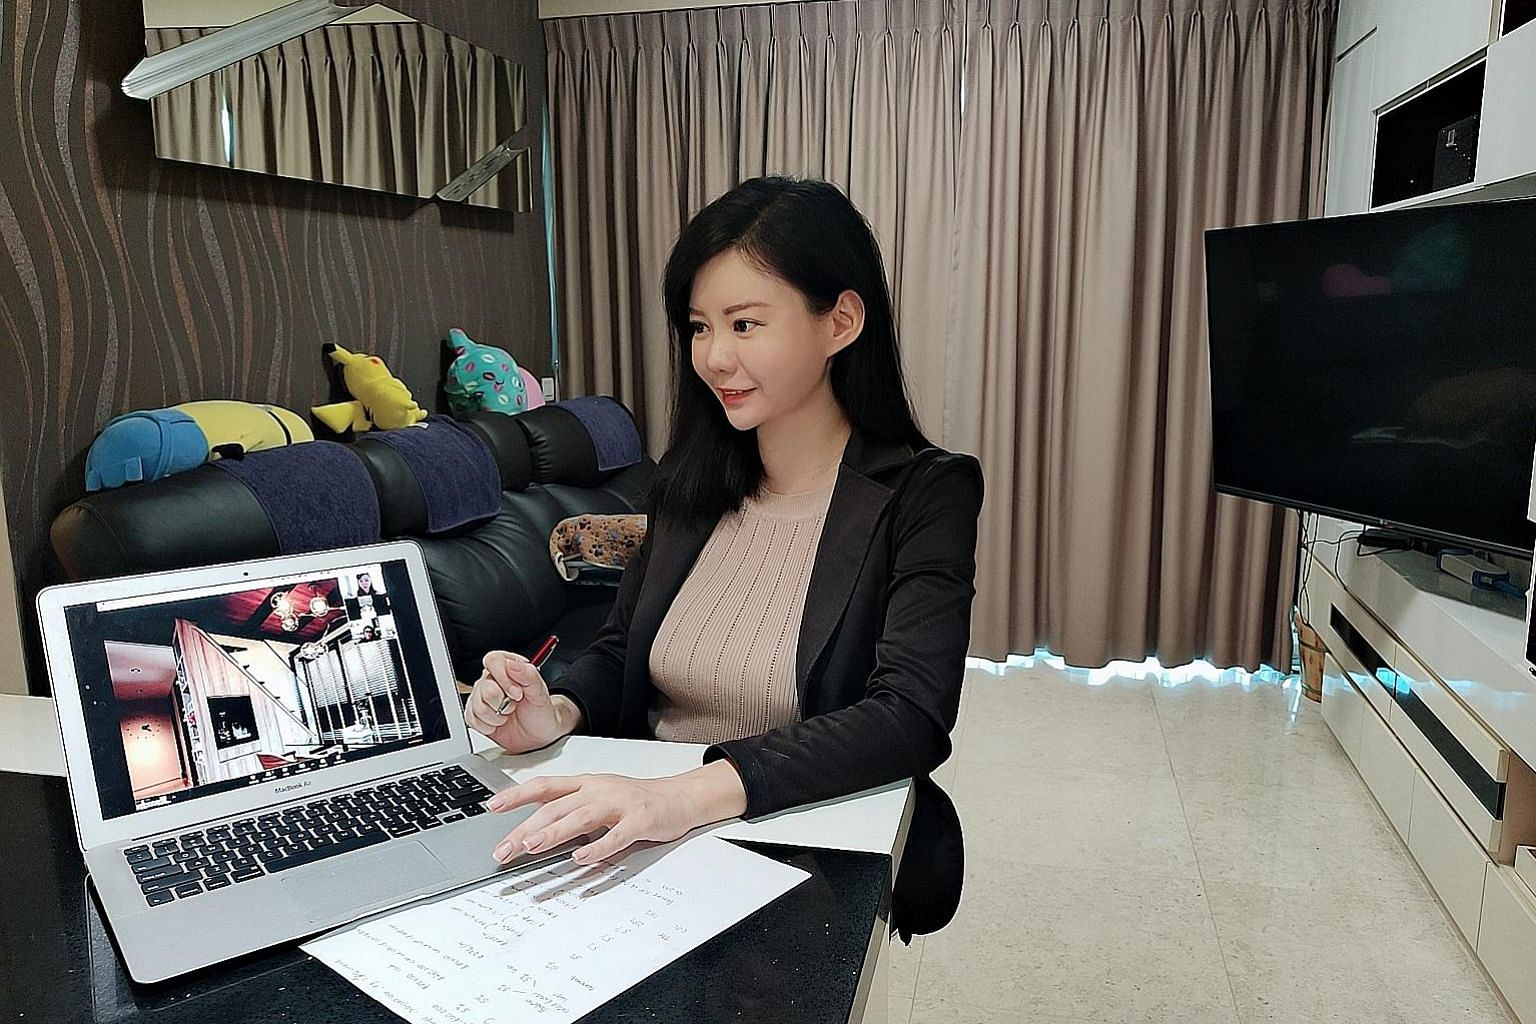 Huttons Asia property agent Charlyene Choo, 35, conducting a virtual viewing of a three-bedroom condo unit in Sengkang for a potential buyer. She has conducted at least five real-time viewings through Zoom during the circuit breaker period.